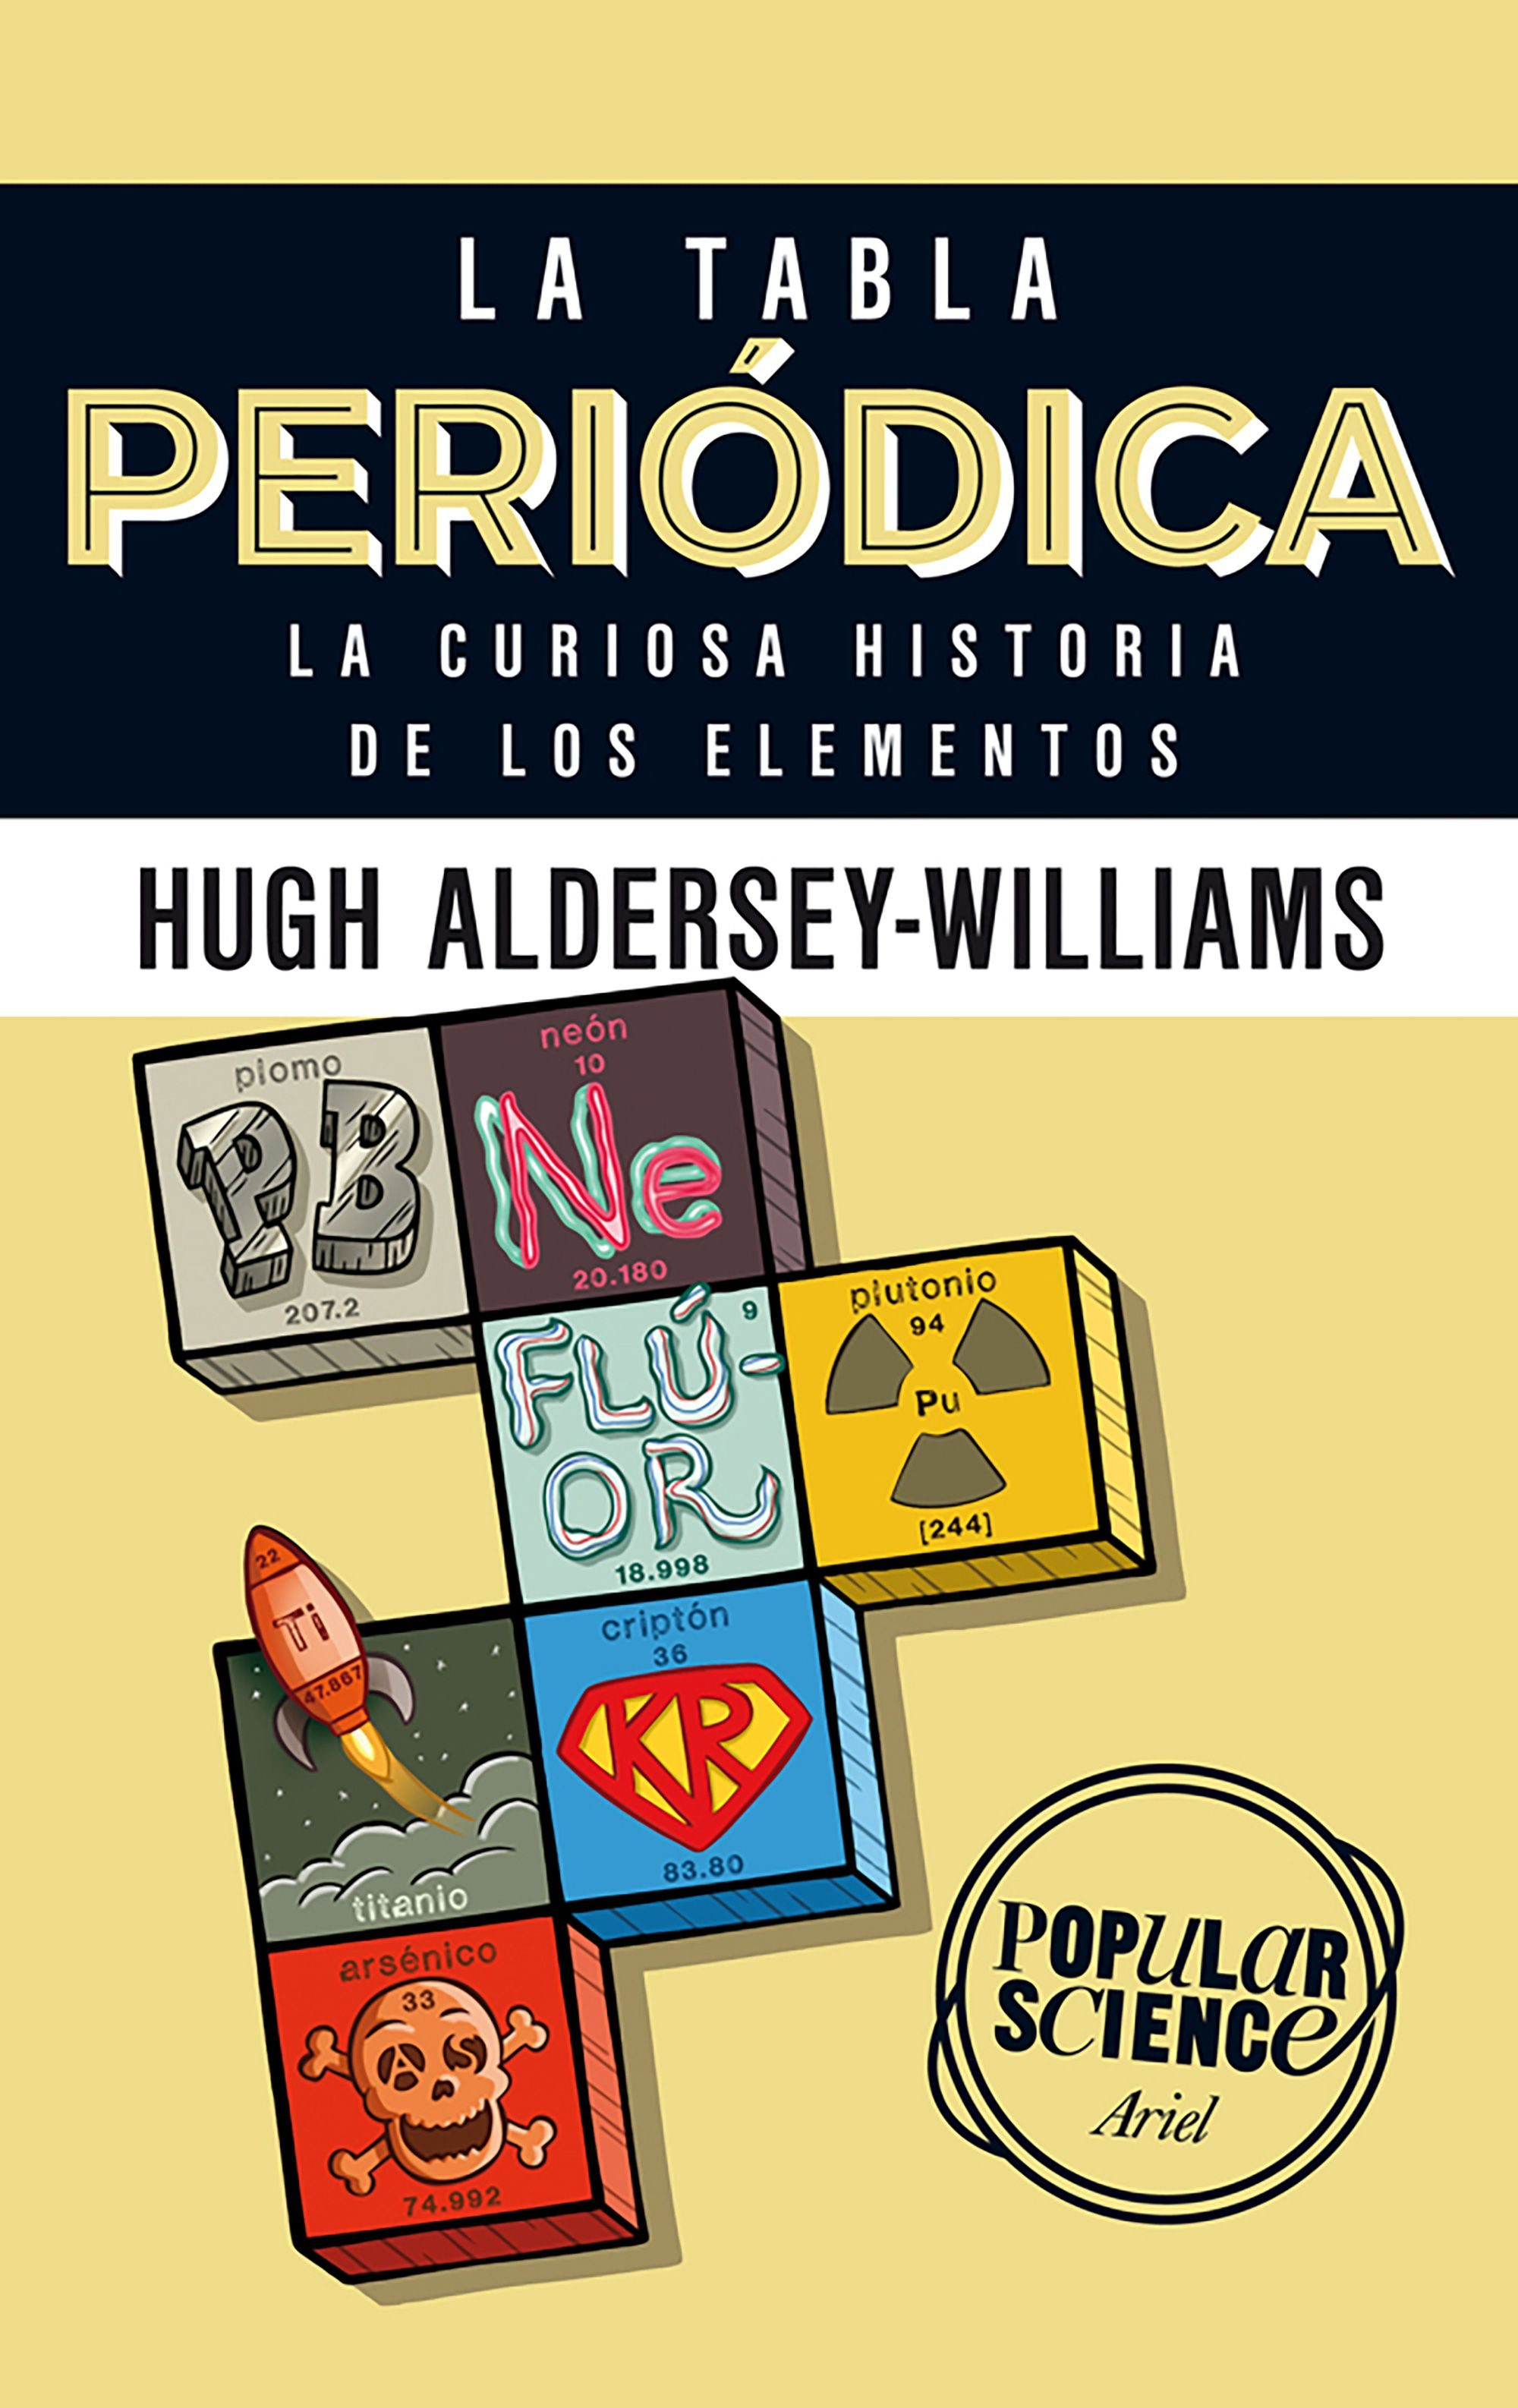 La tabla periodica hugh aldersey williams comprar libro la tabla periodica hugh aldersey williams 9788434422520 urtaz Images